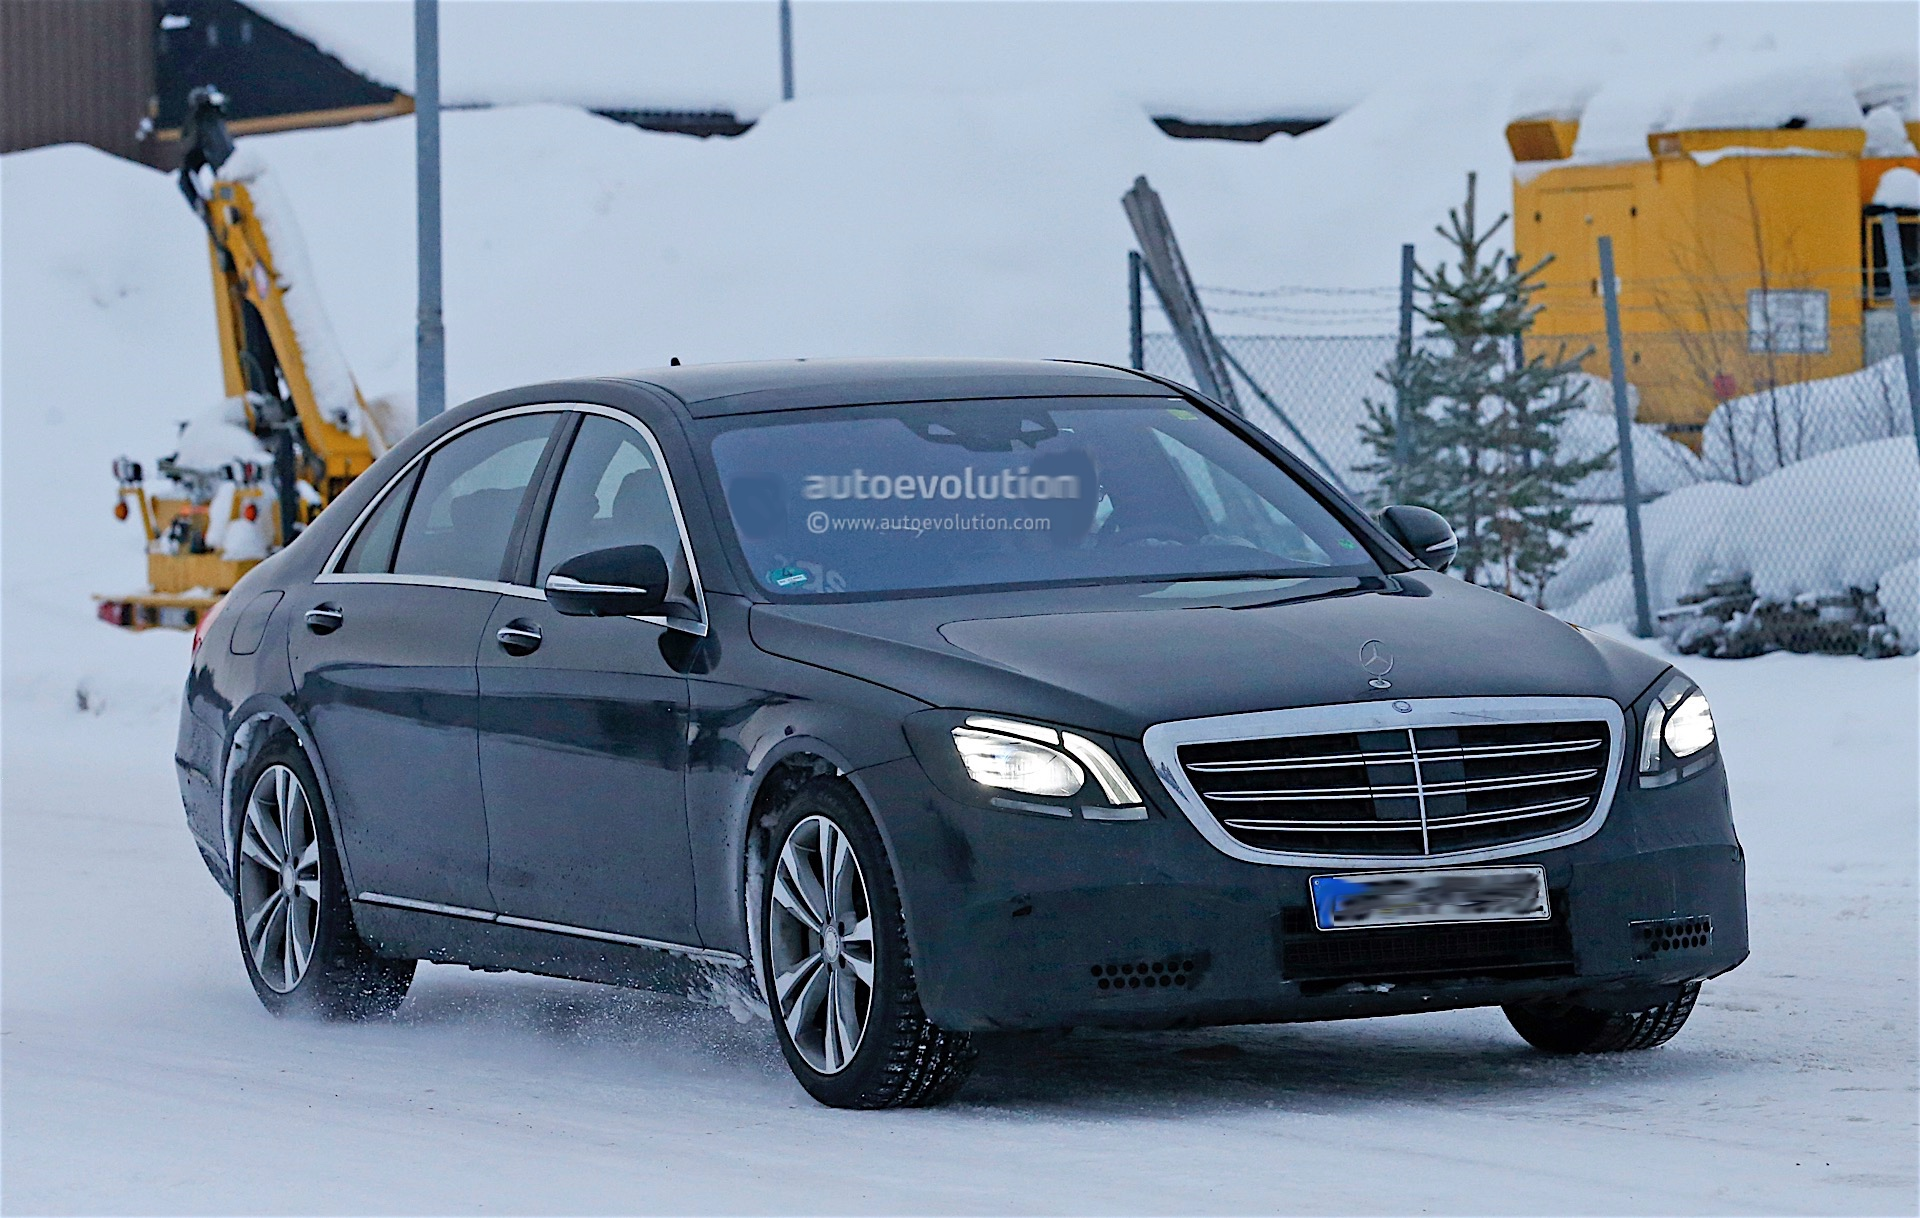 2018 Mercedes Benz S Class Facelift Spyshots Reveal New